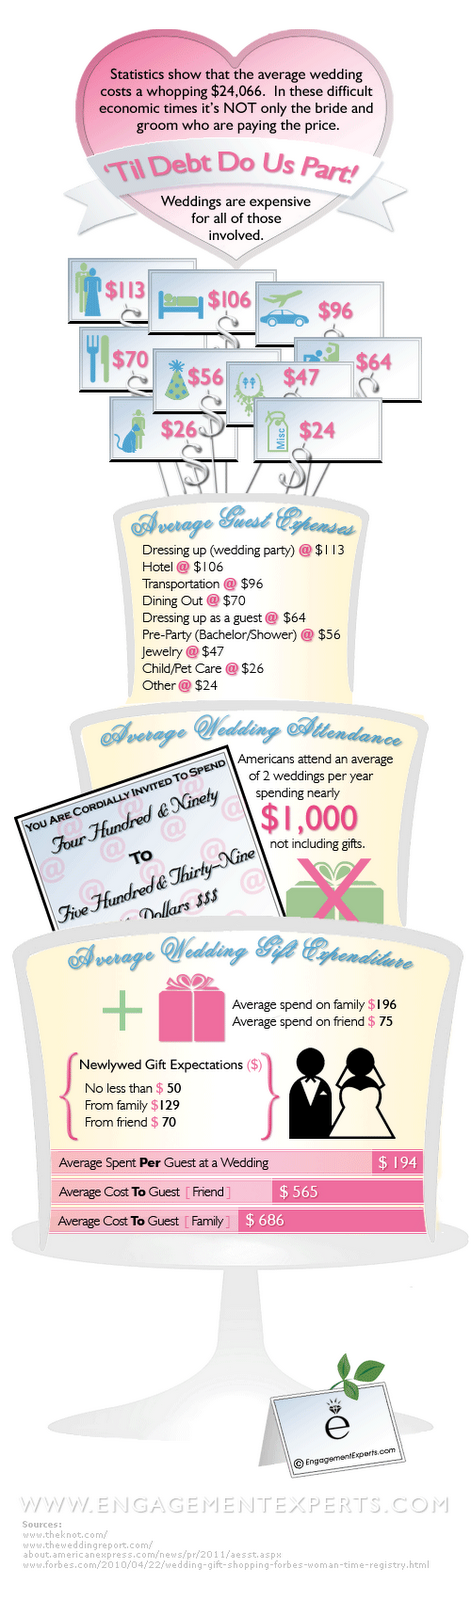 Cost to Wedding Guests